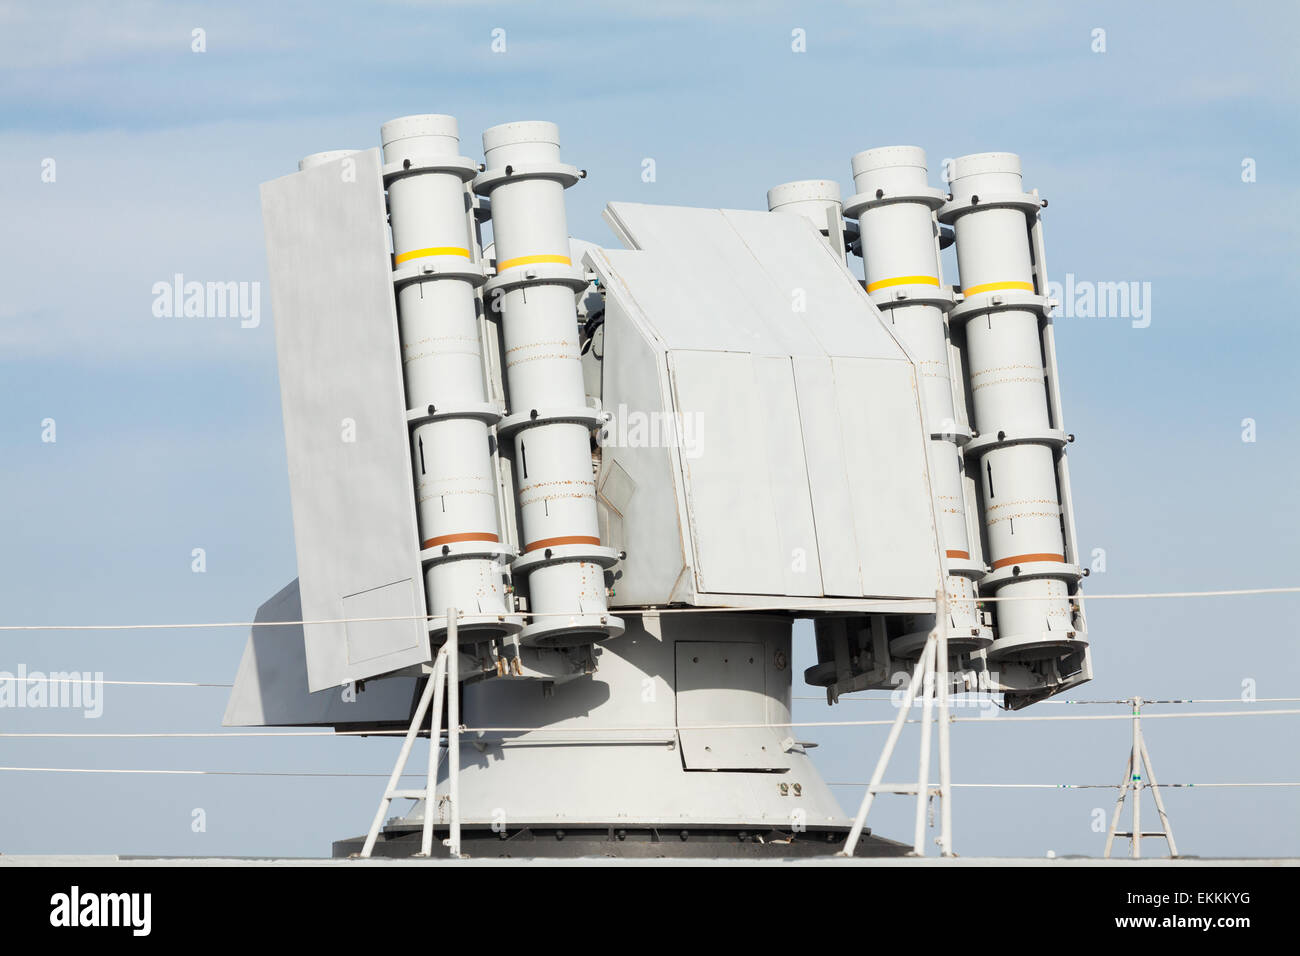 antiaircraft defence rocket launcher - Stock Image